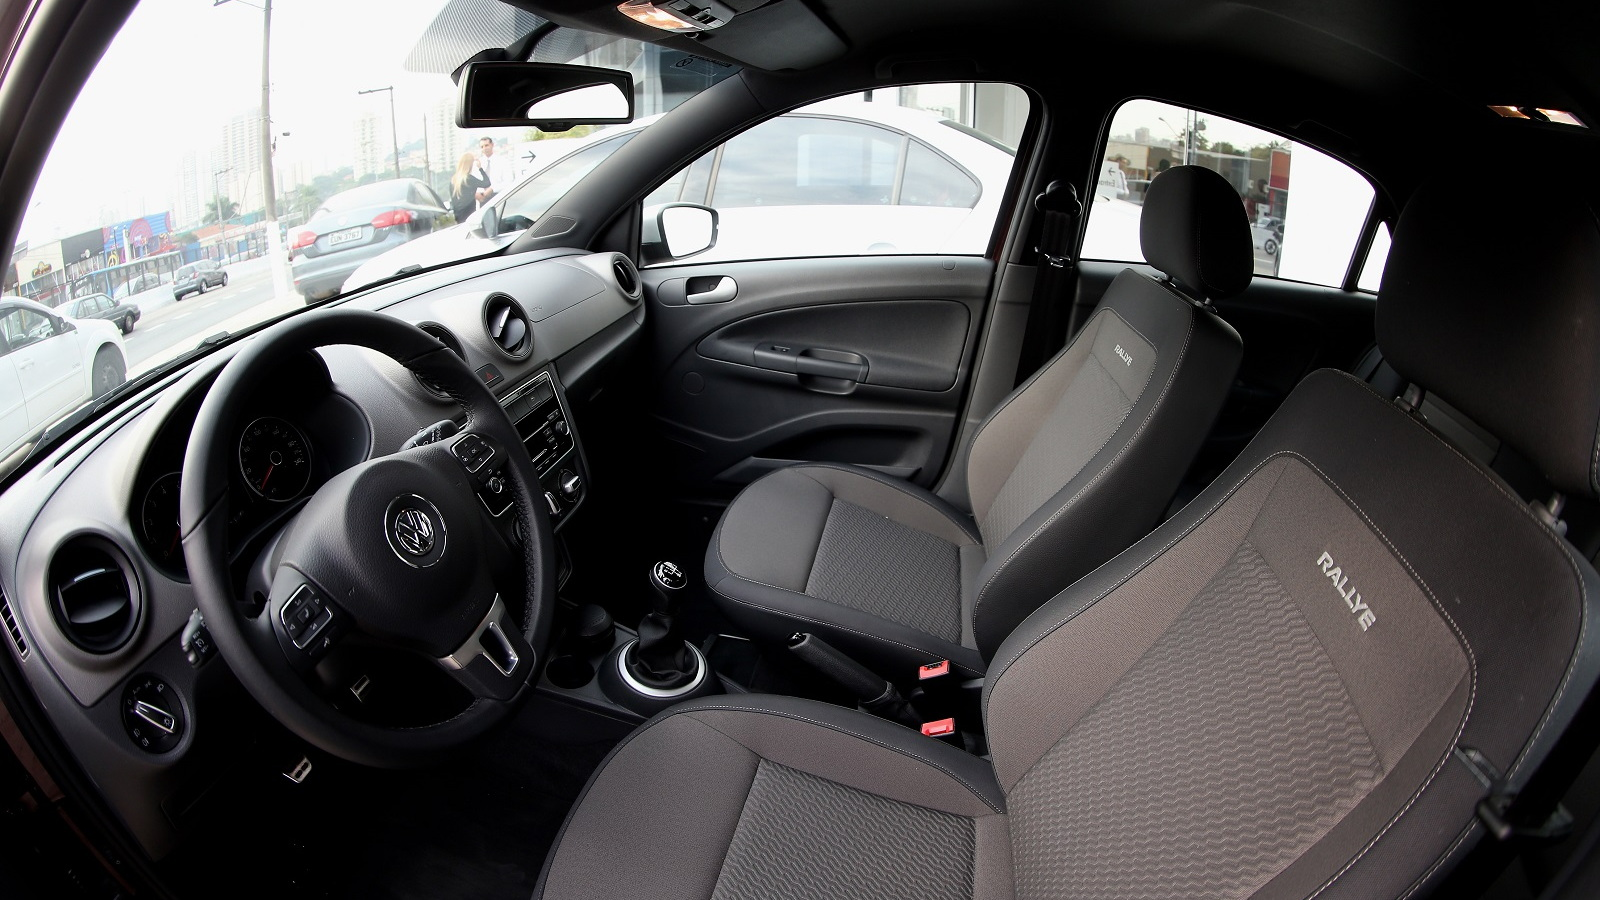 Interior of Volkswagen Gol, Brazilian flex-fuel vehicle